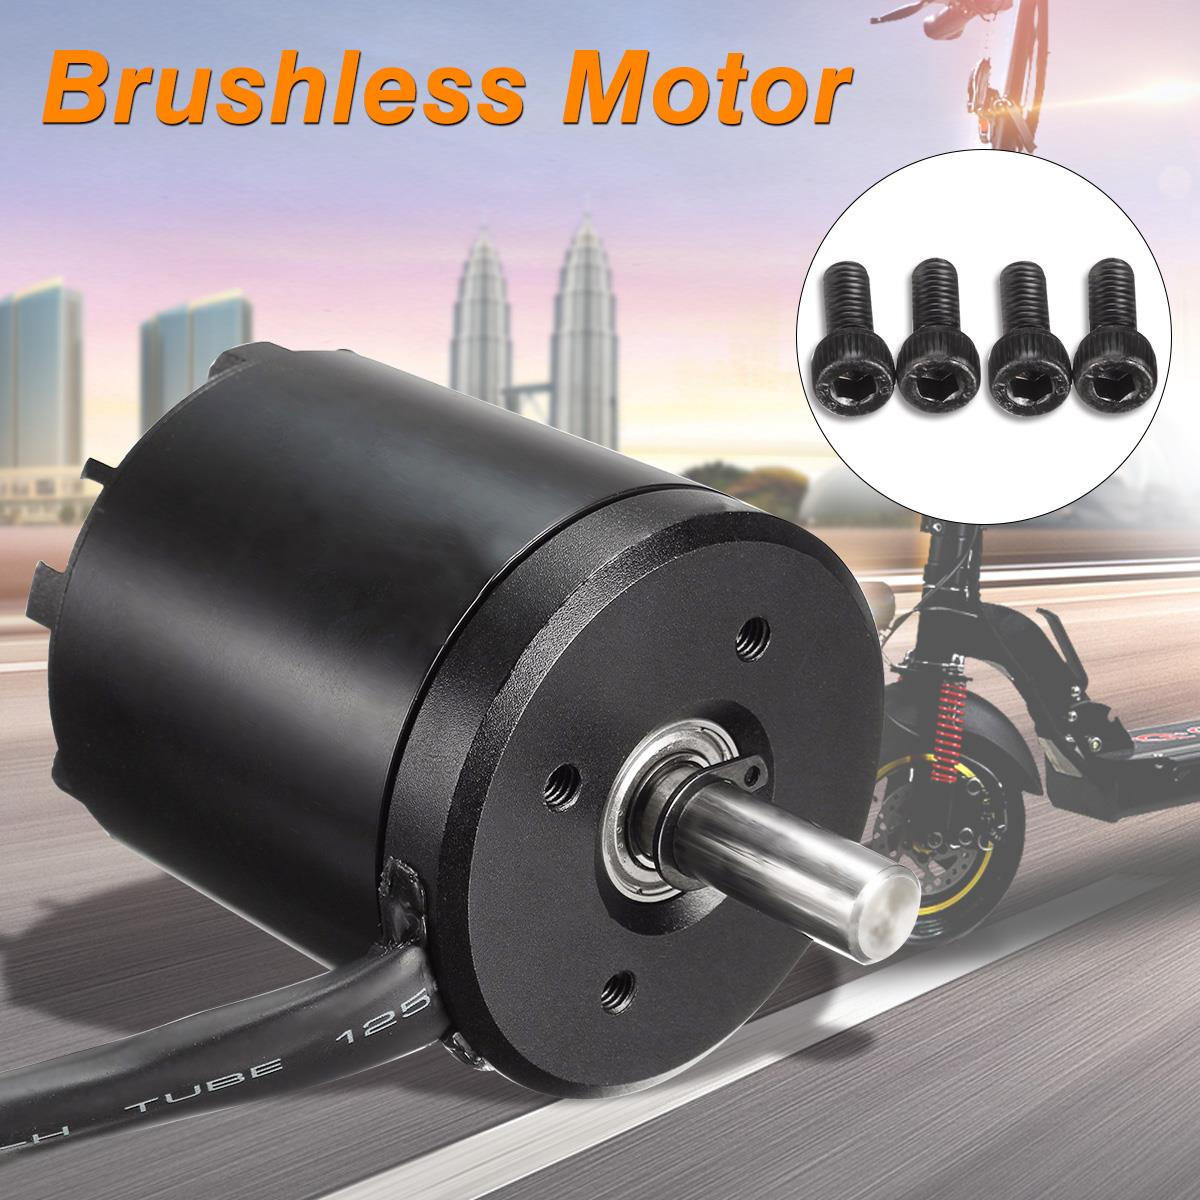 2.6KG 3-8S N5065 5065 270KV Brushless Sensored Motor For Electric Skate Scooter Motor Accessories